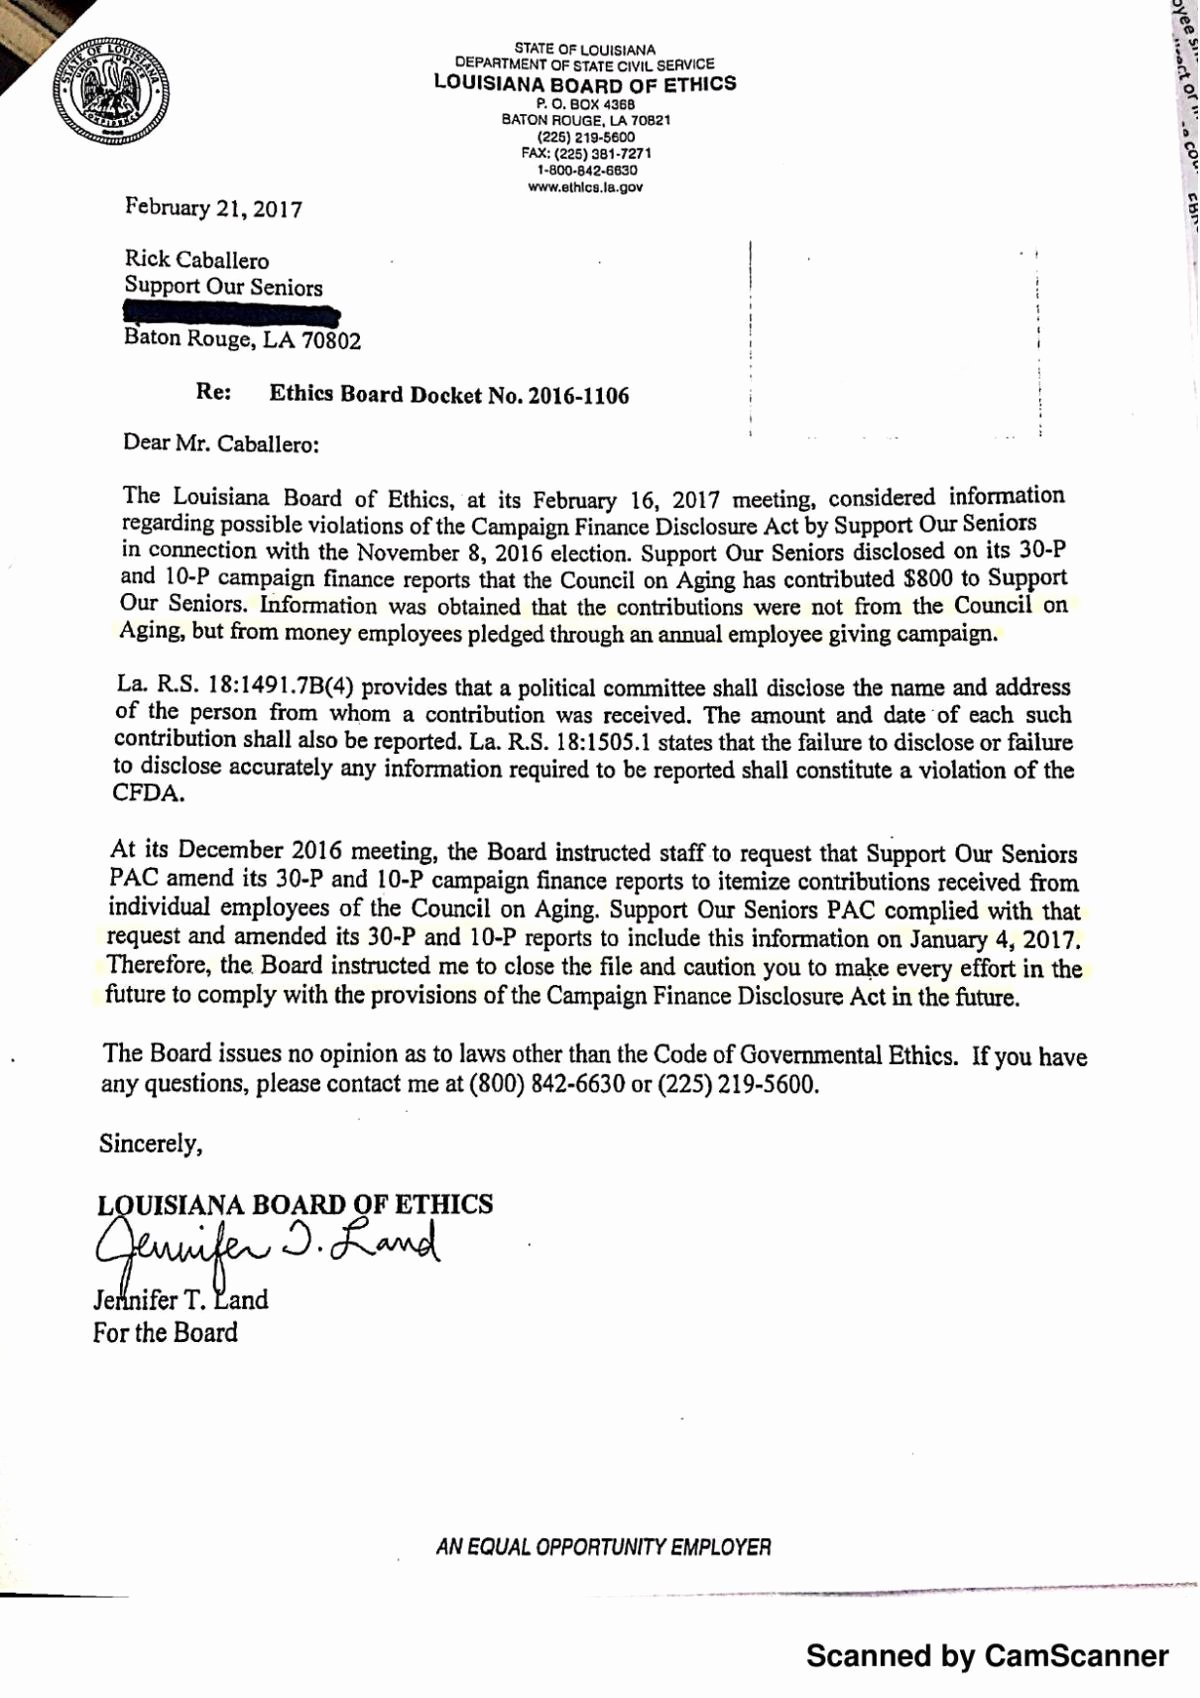 Conflict Of Interest Letter Lovely Council On Aging Board Takes Action to Clean Up Mud D